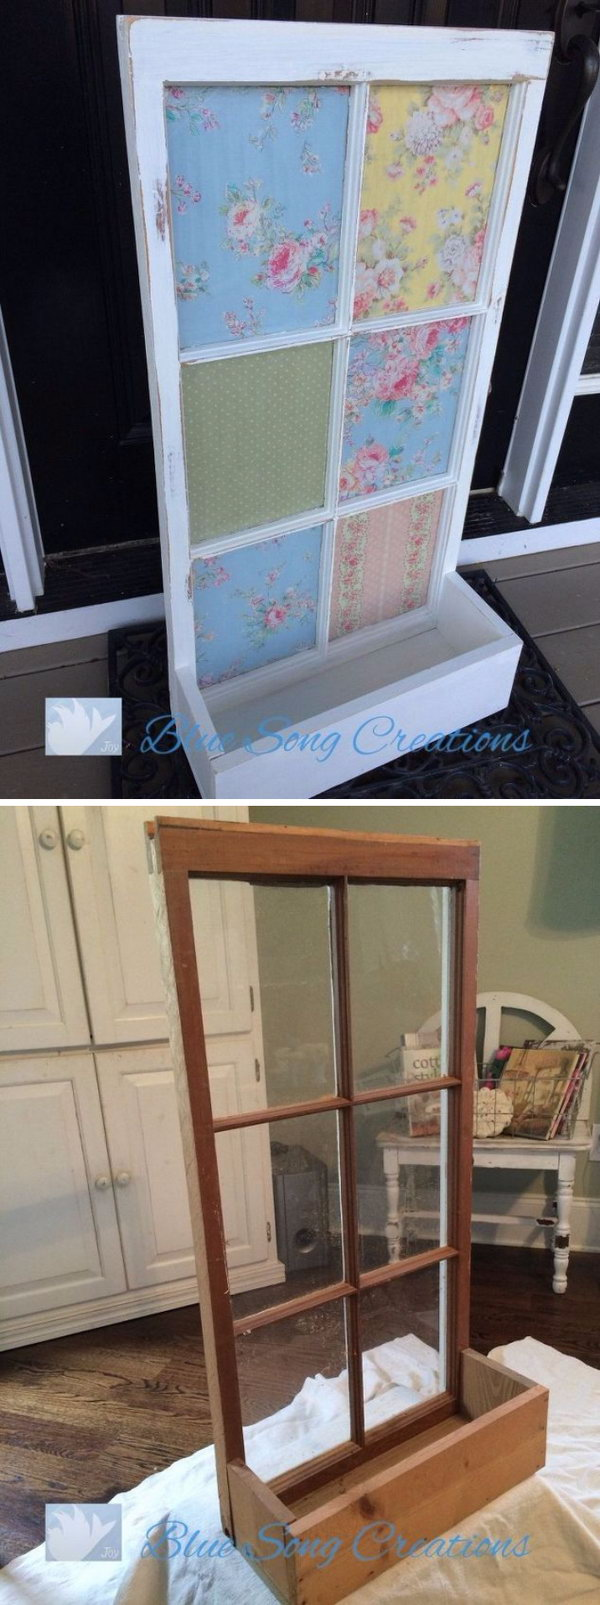 DIY Shabby Chic Window Box